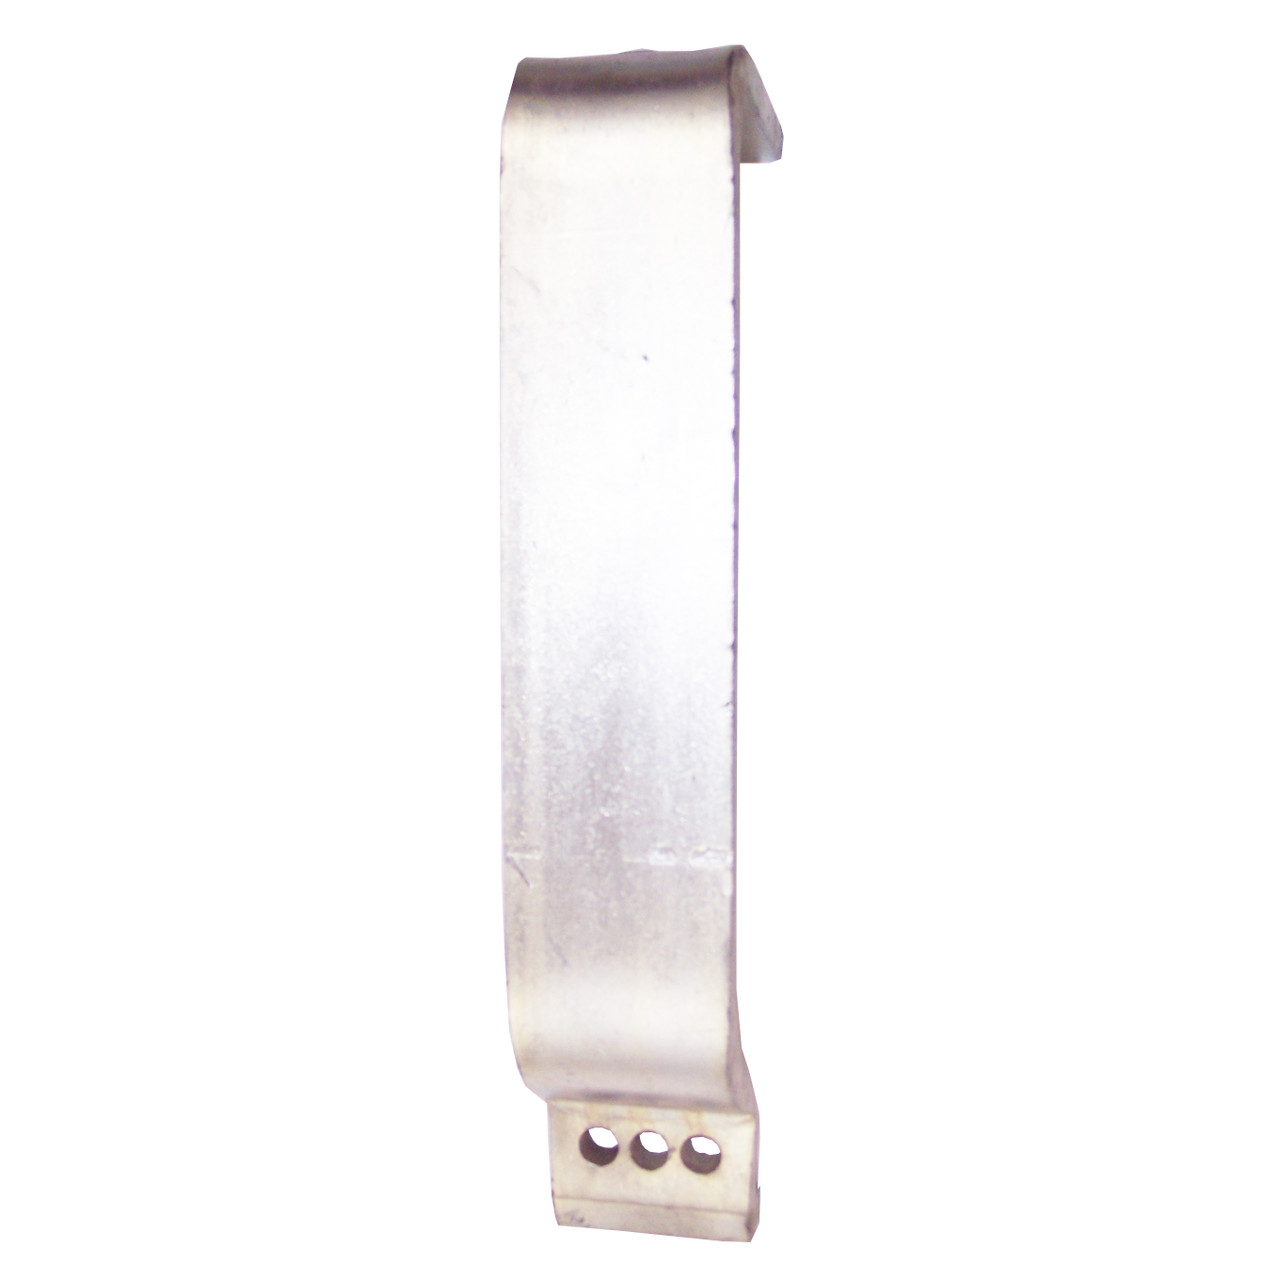 "10"" Hanger Bracket - One Top Hole - ""Zinc Plated"""